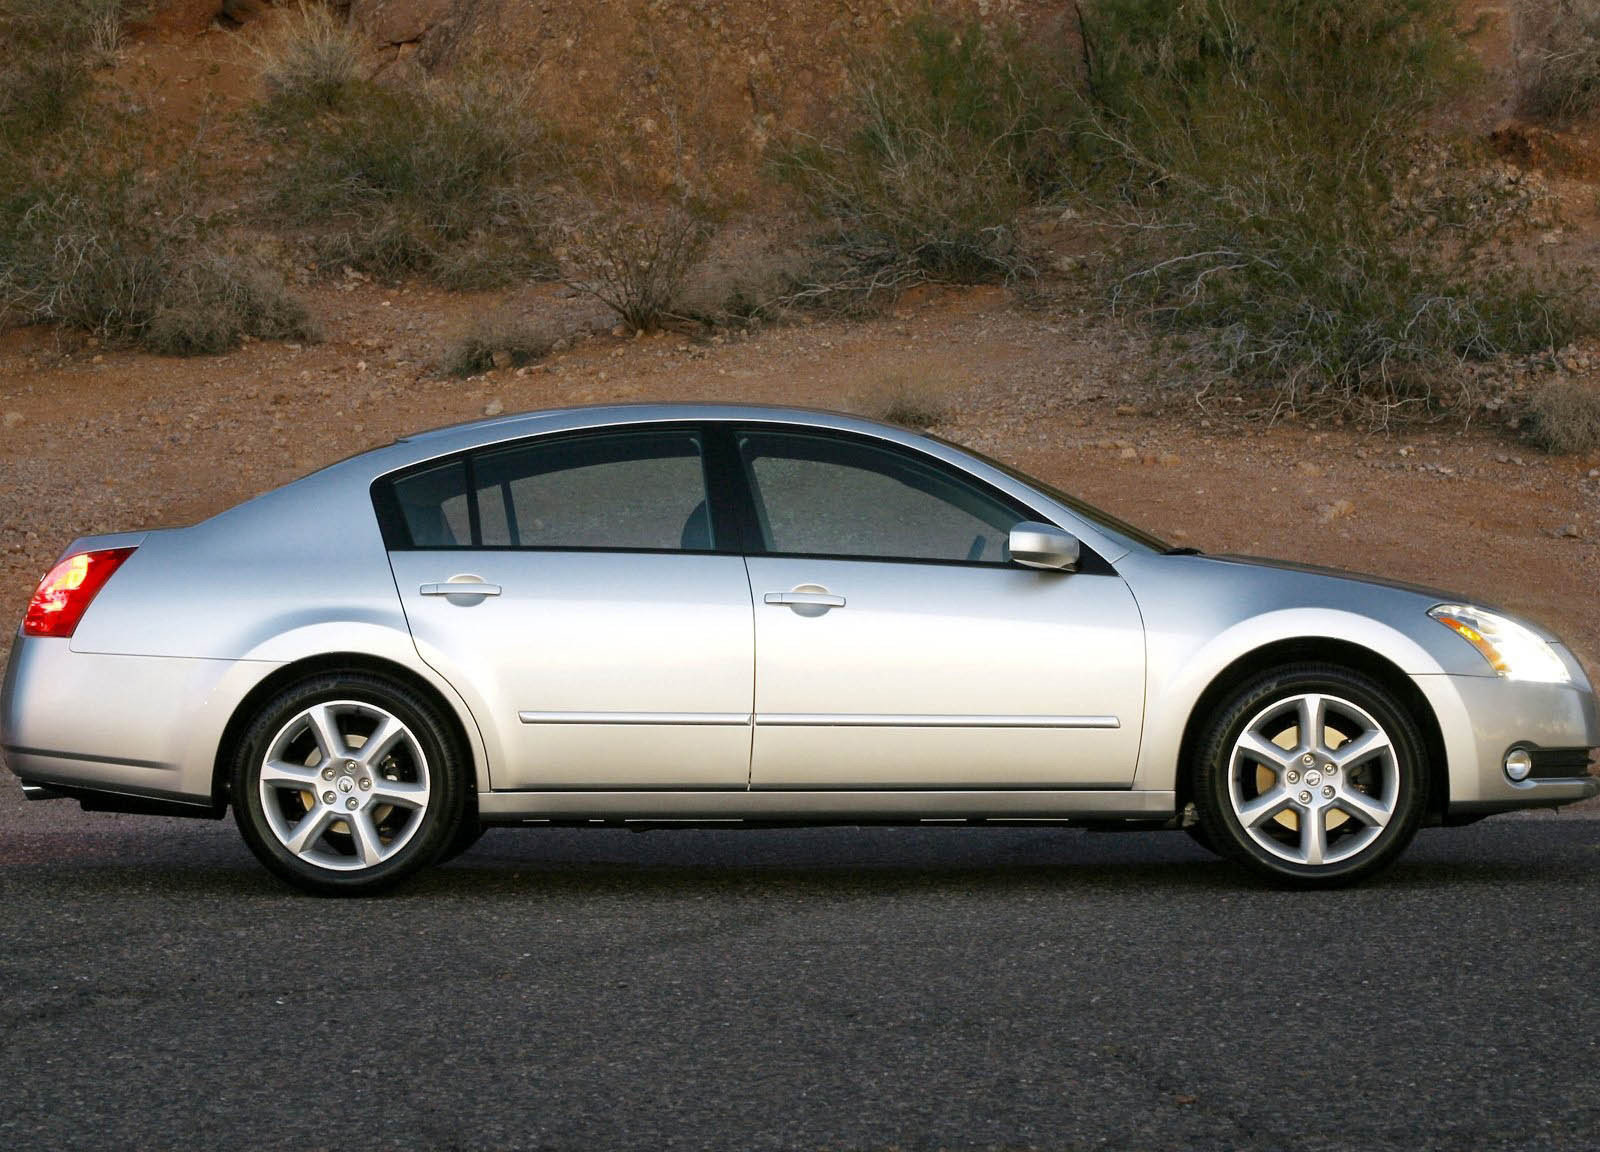 2006 nissan maxima se picture 11410 car review top speed. Black Bedroom Furniture Sets. Home Design Ideas